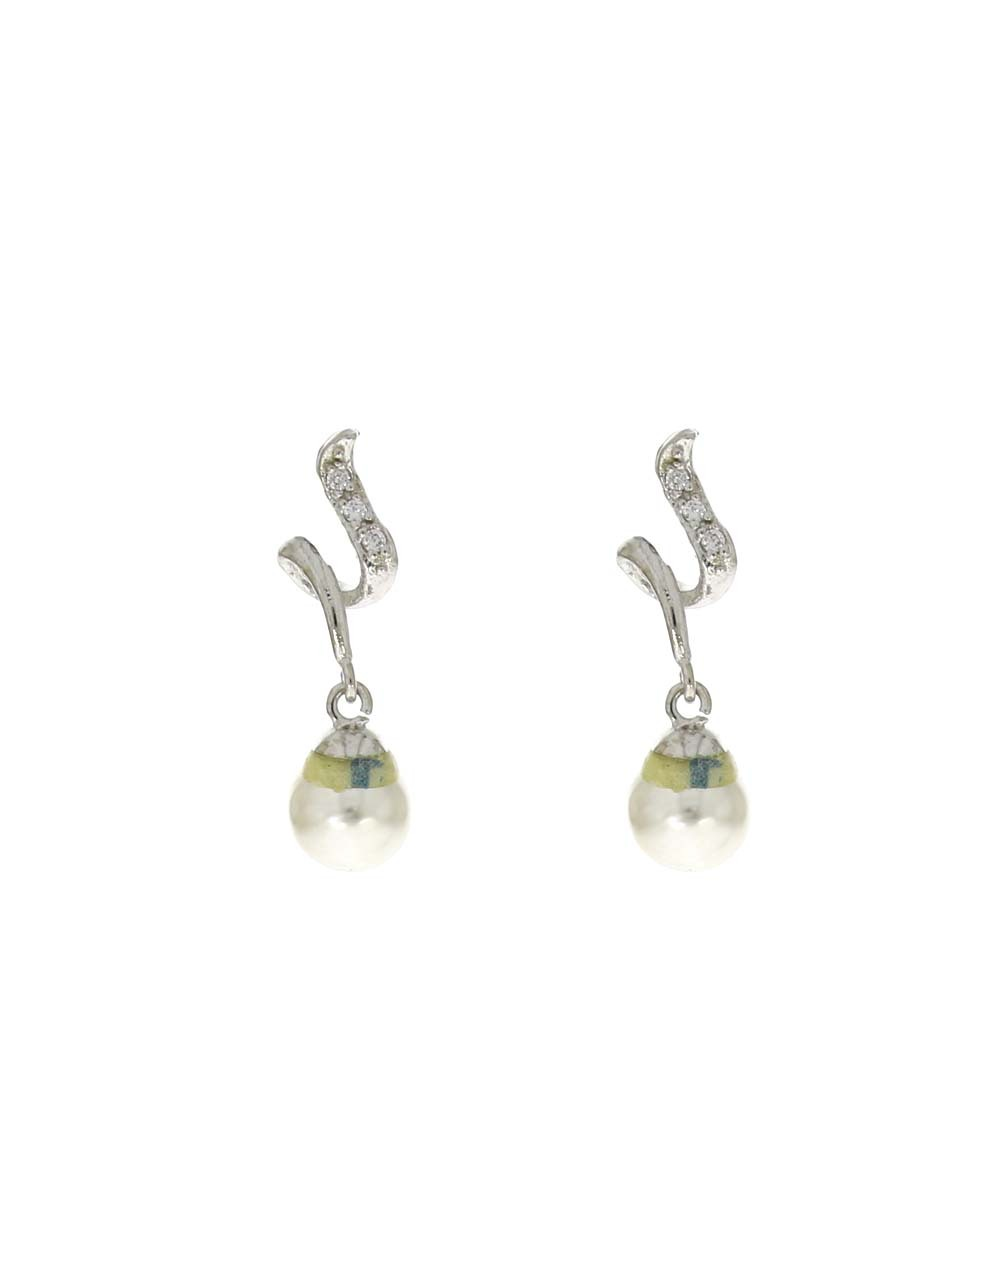 Silver Finish Dazzling American Diamond Studded Hanging Earrings for Women